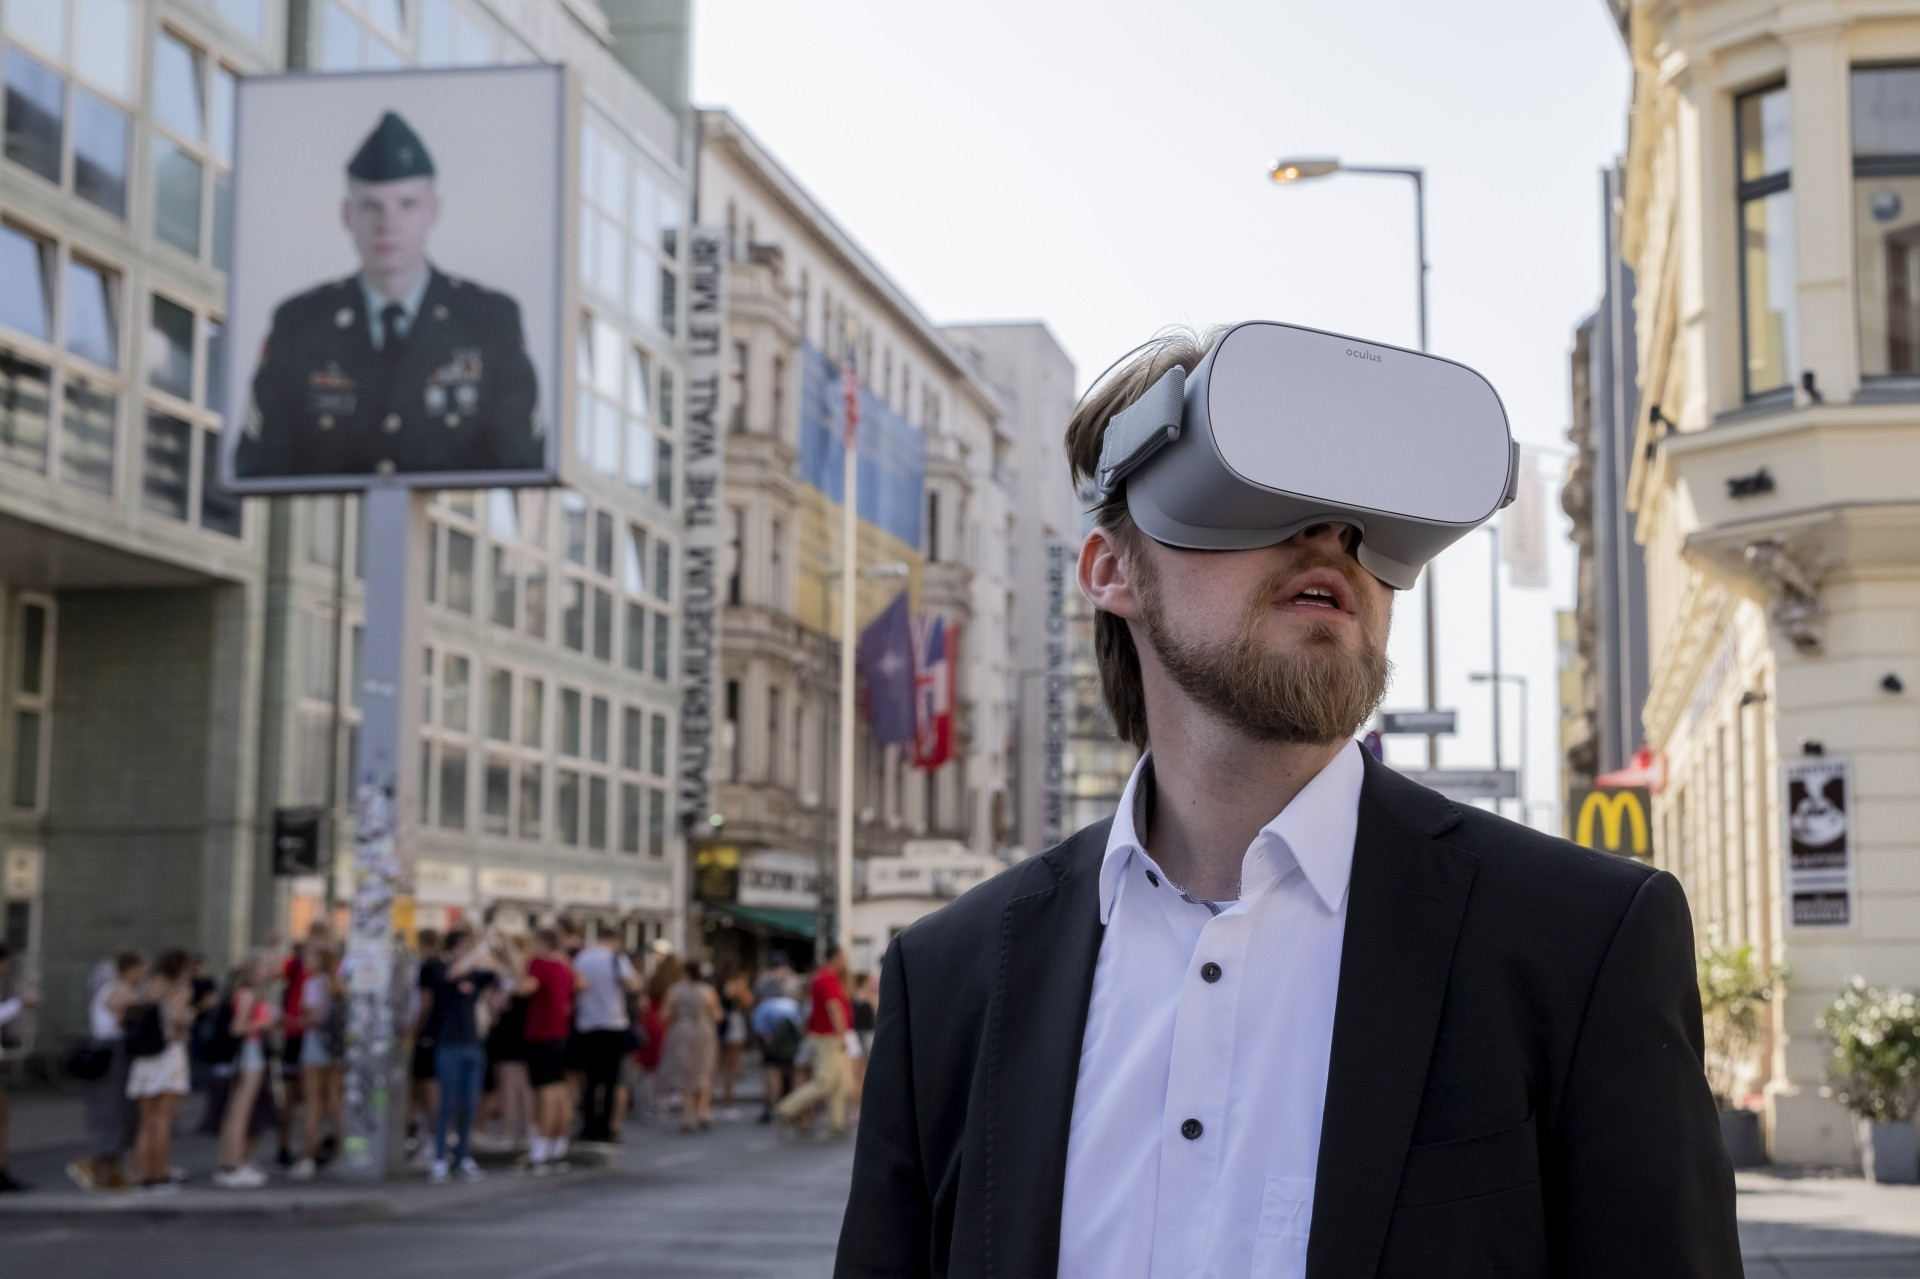 Rothe wearing a VR headset to explore the Berlin streets at Checkpoint Charlie, showing him how it looked like in the 80s cold war in Berlin, Germany. — AP